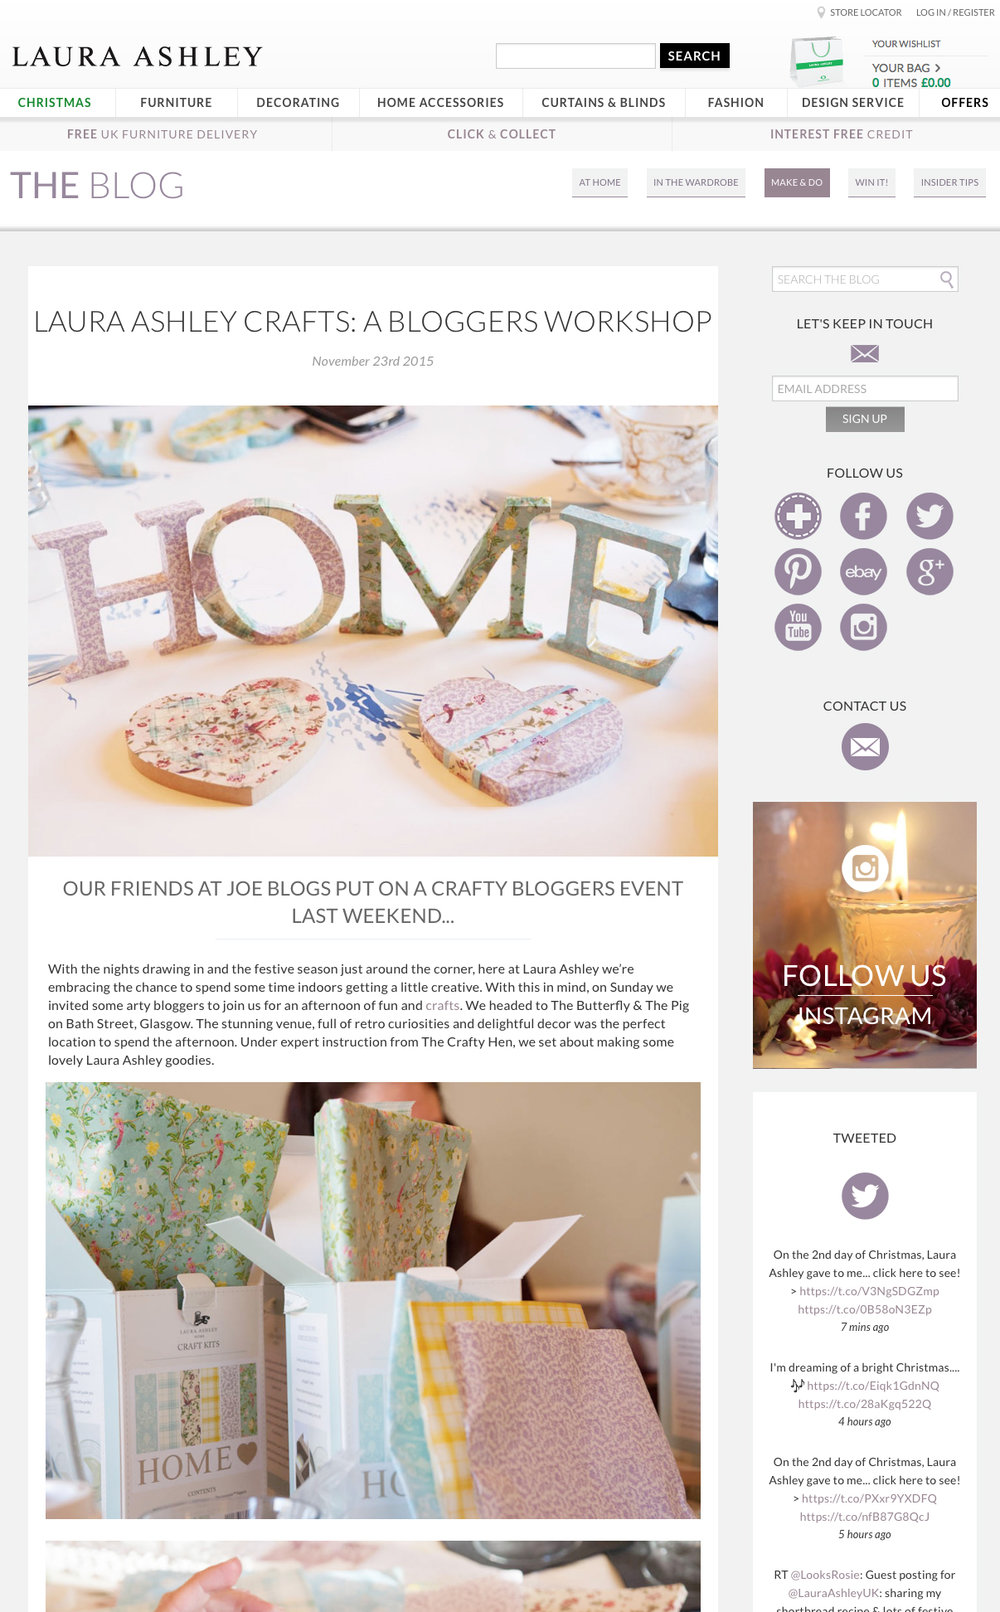 LAURA ASHLEY CRAFTS NOV 2015.jpg